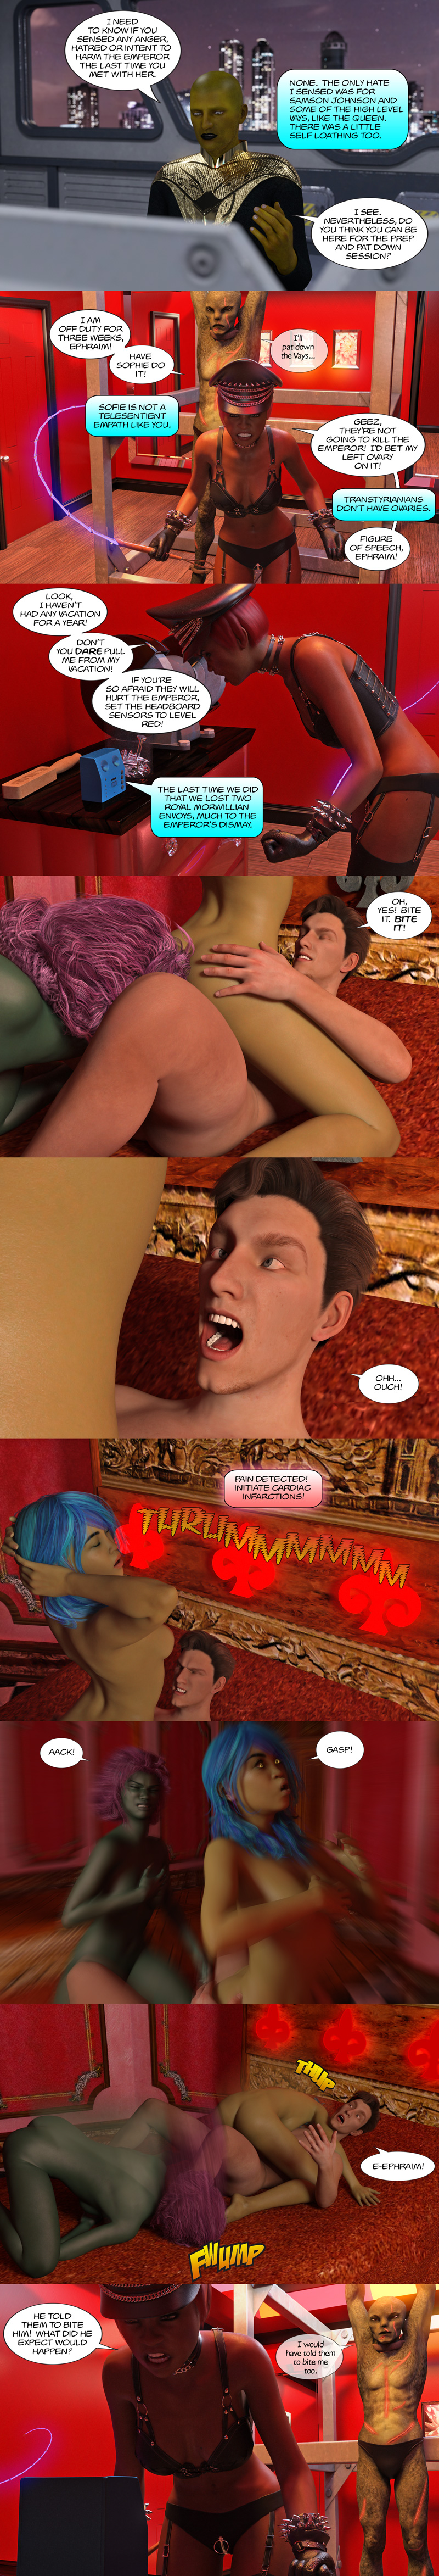 Chapter 15, page 24